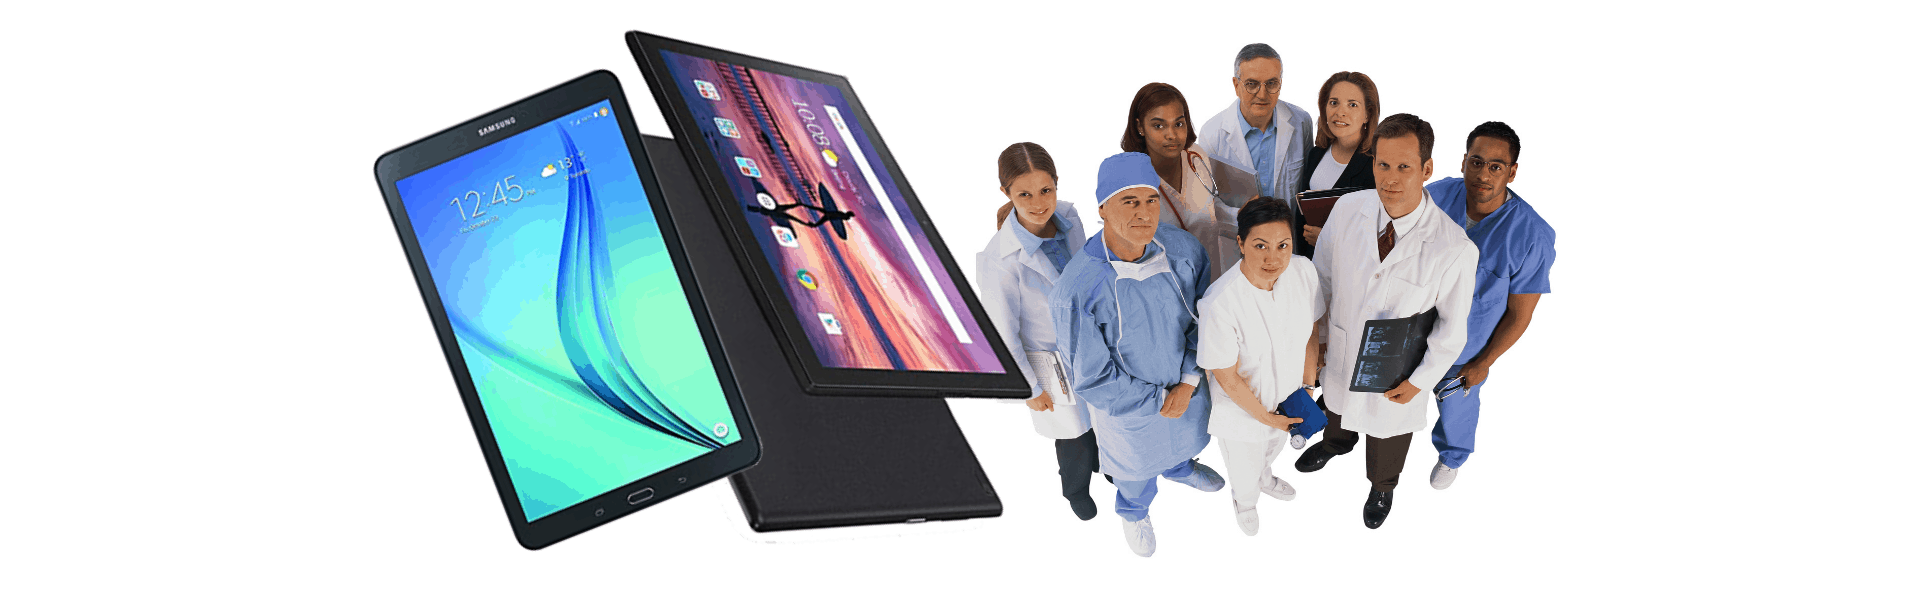 best tablet for medical students